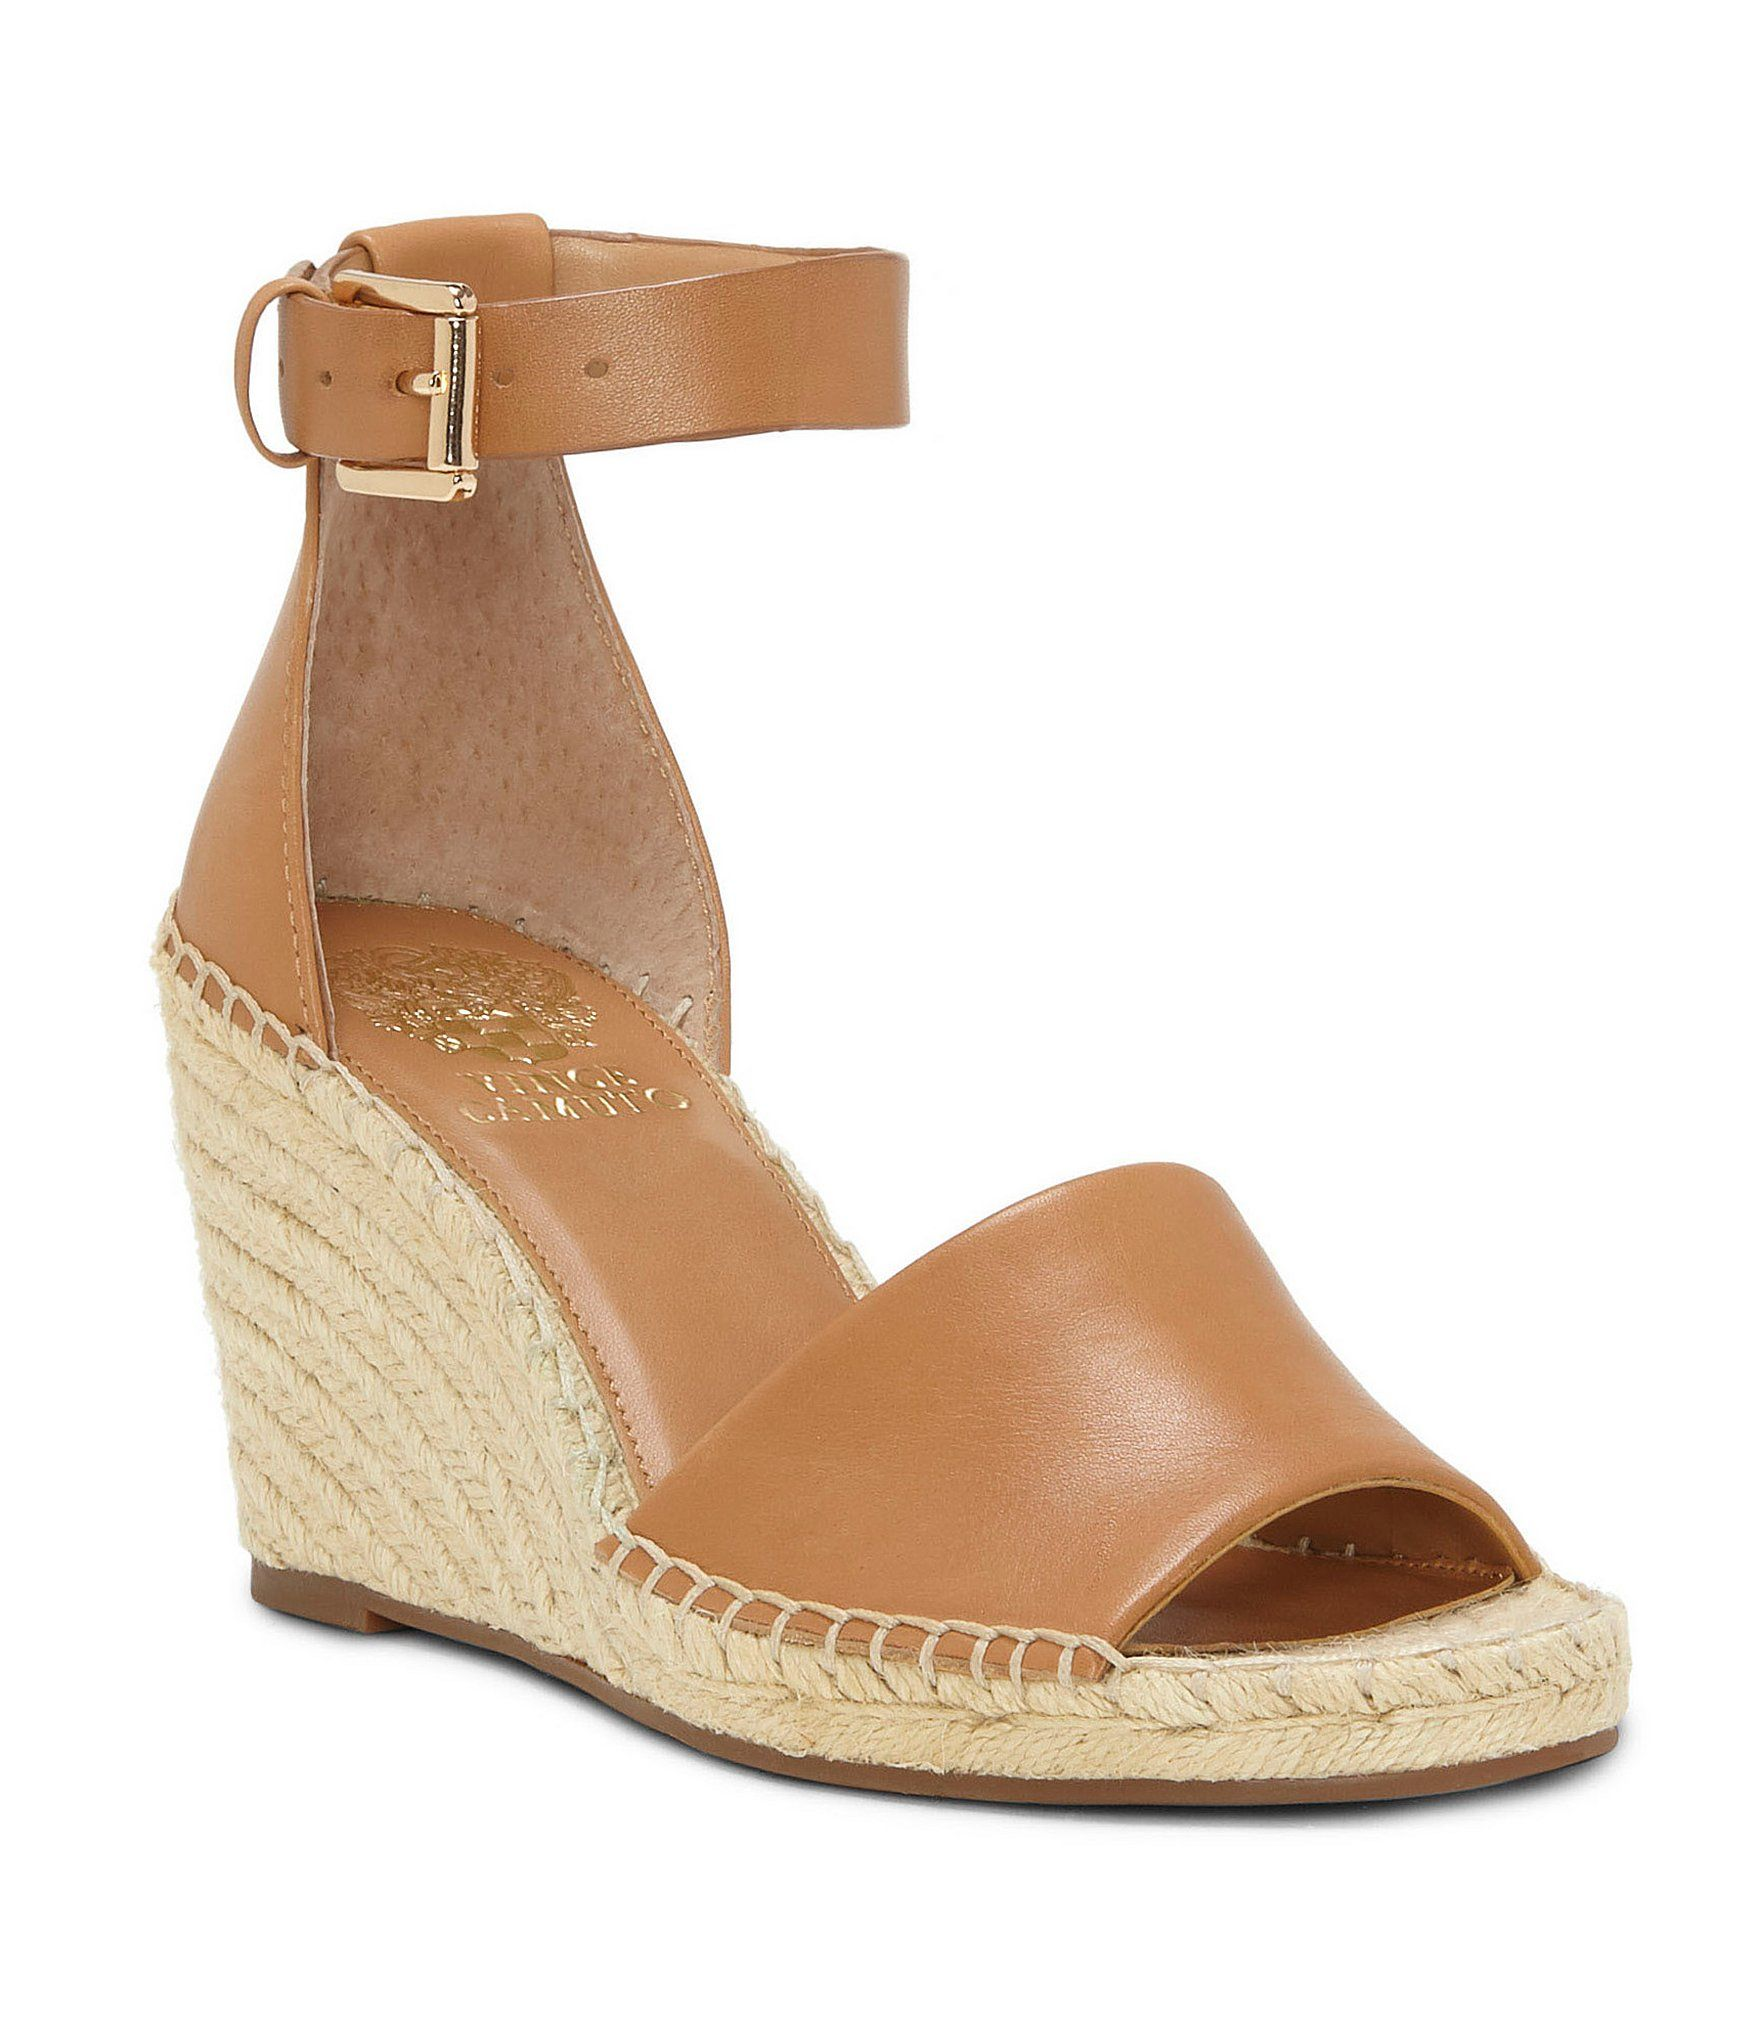 60374f22f3189 Vince Camuto Leera Ankle Strap Espadrille Wedge Sandals in 2018 ...